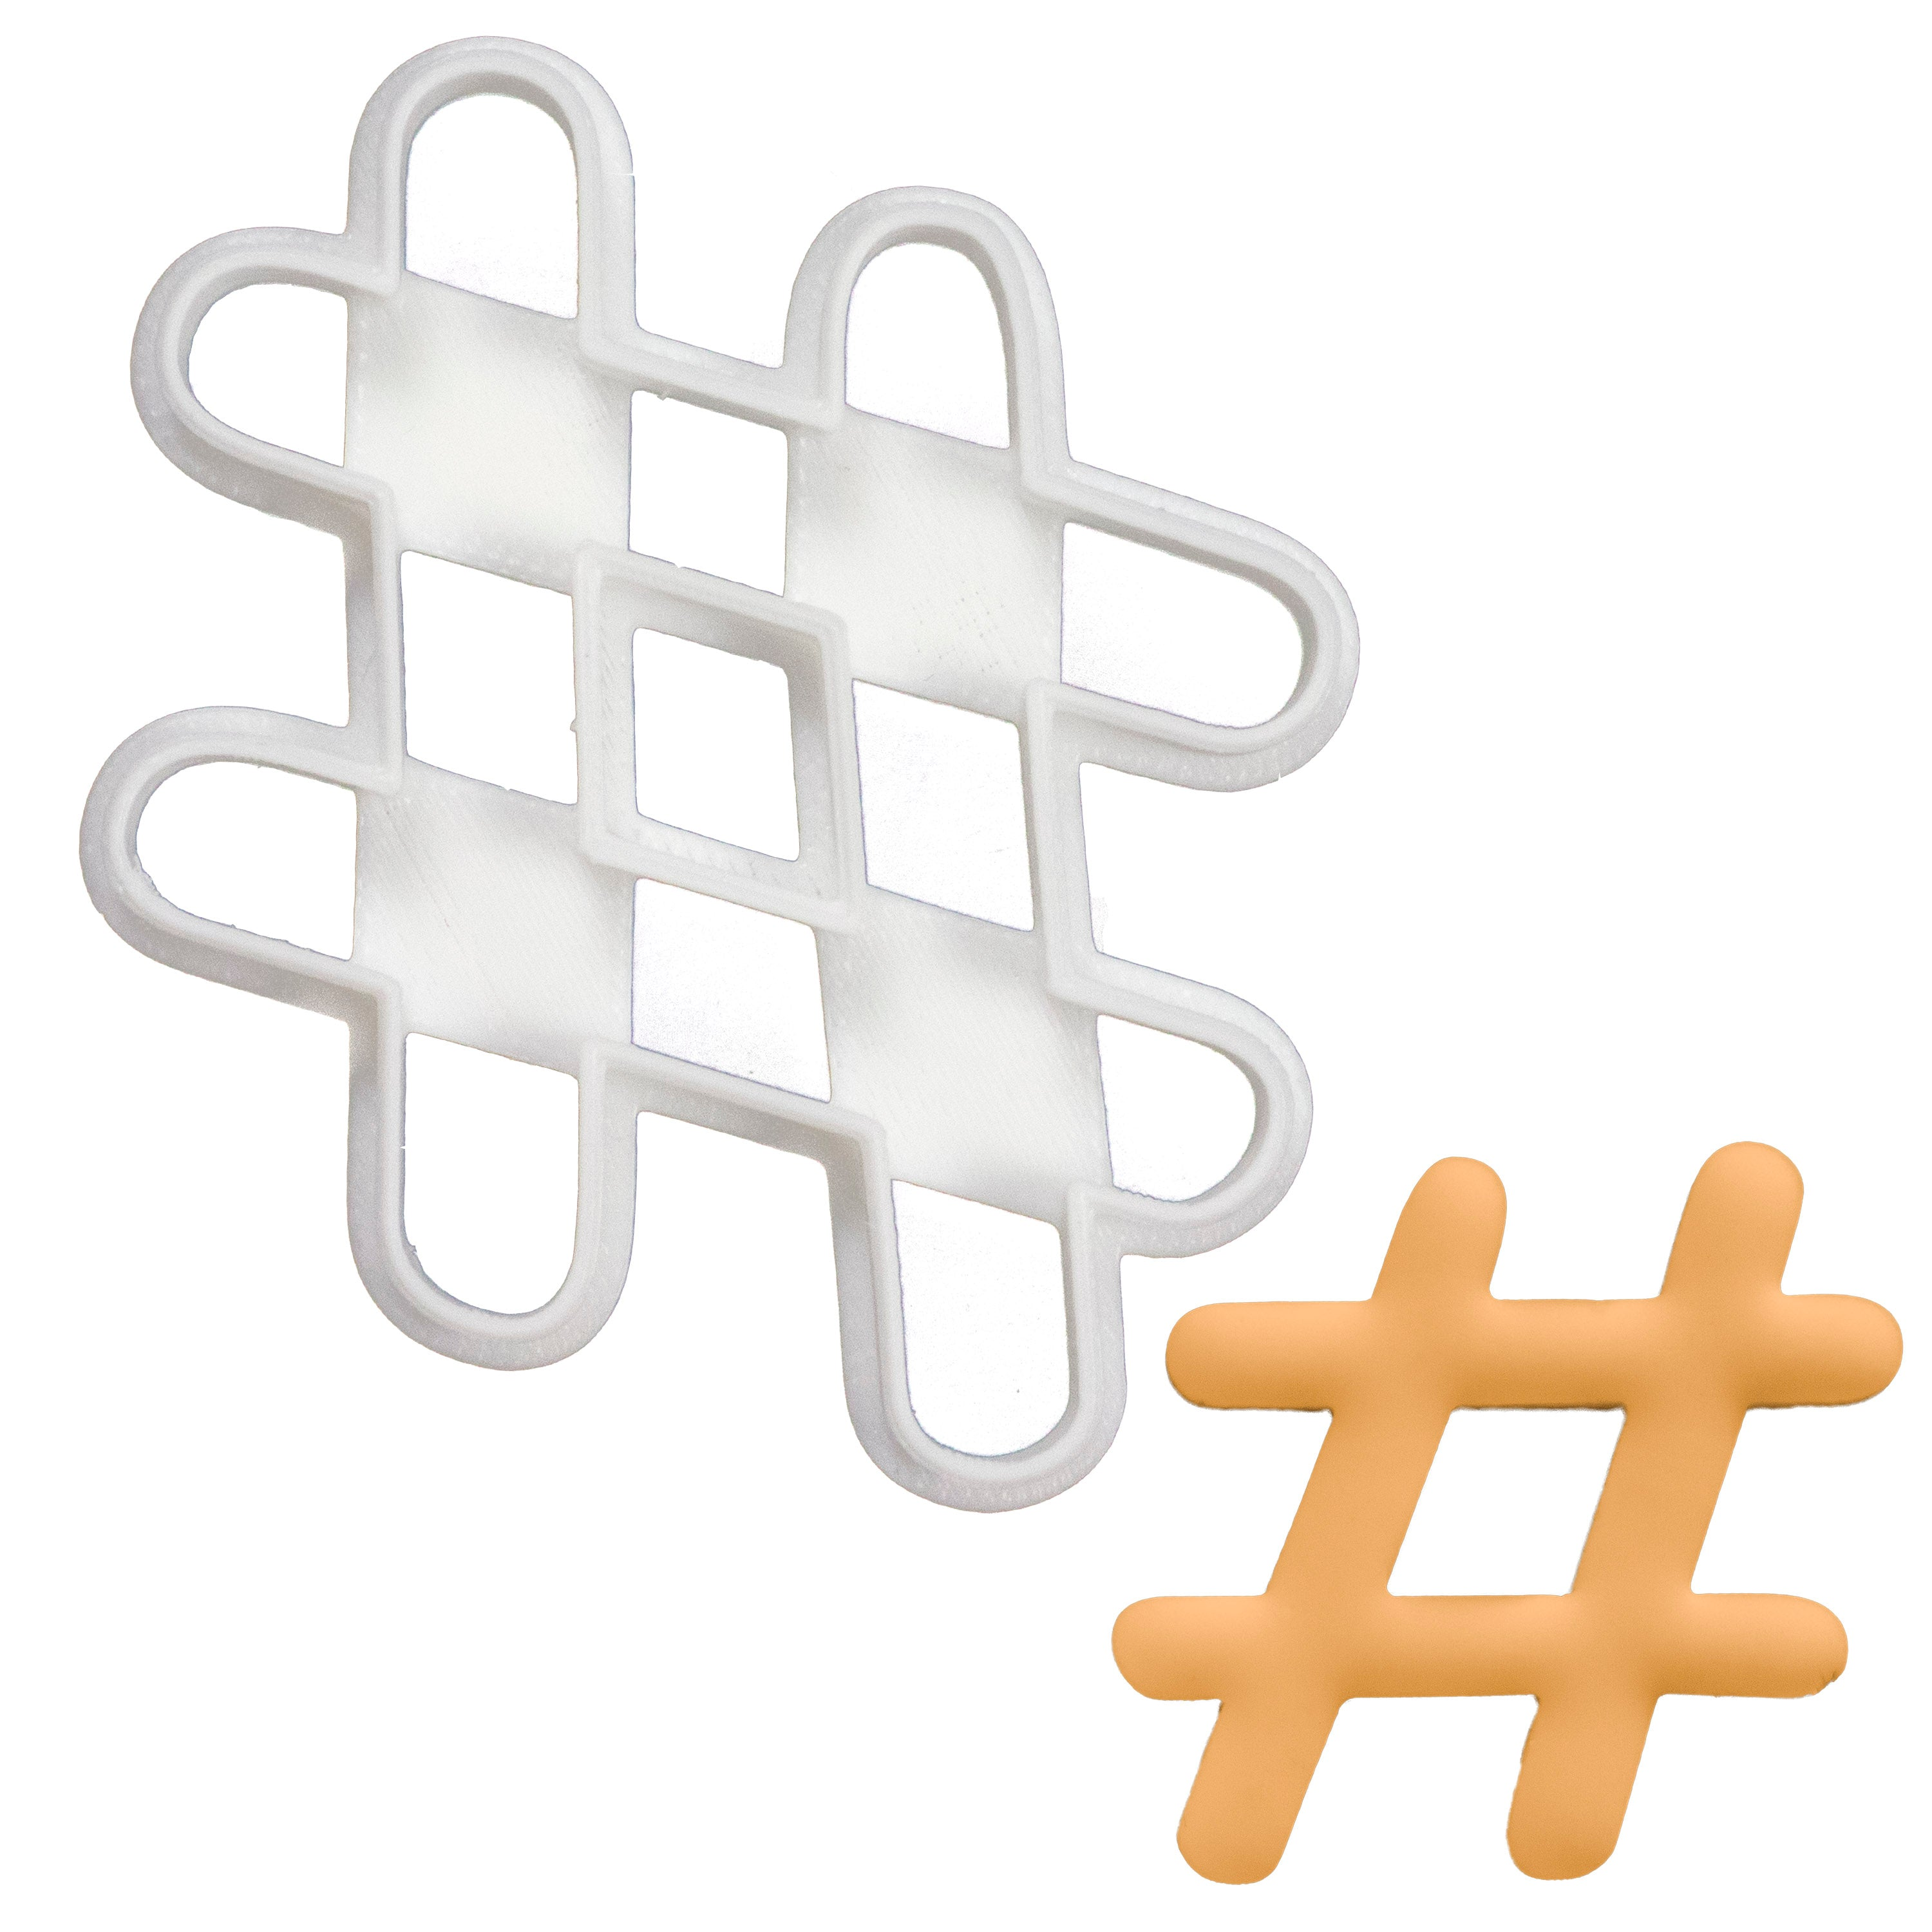 Hashtag cookie cutter